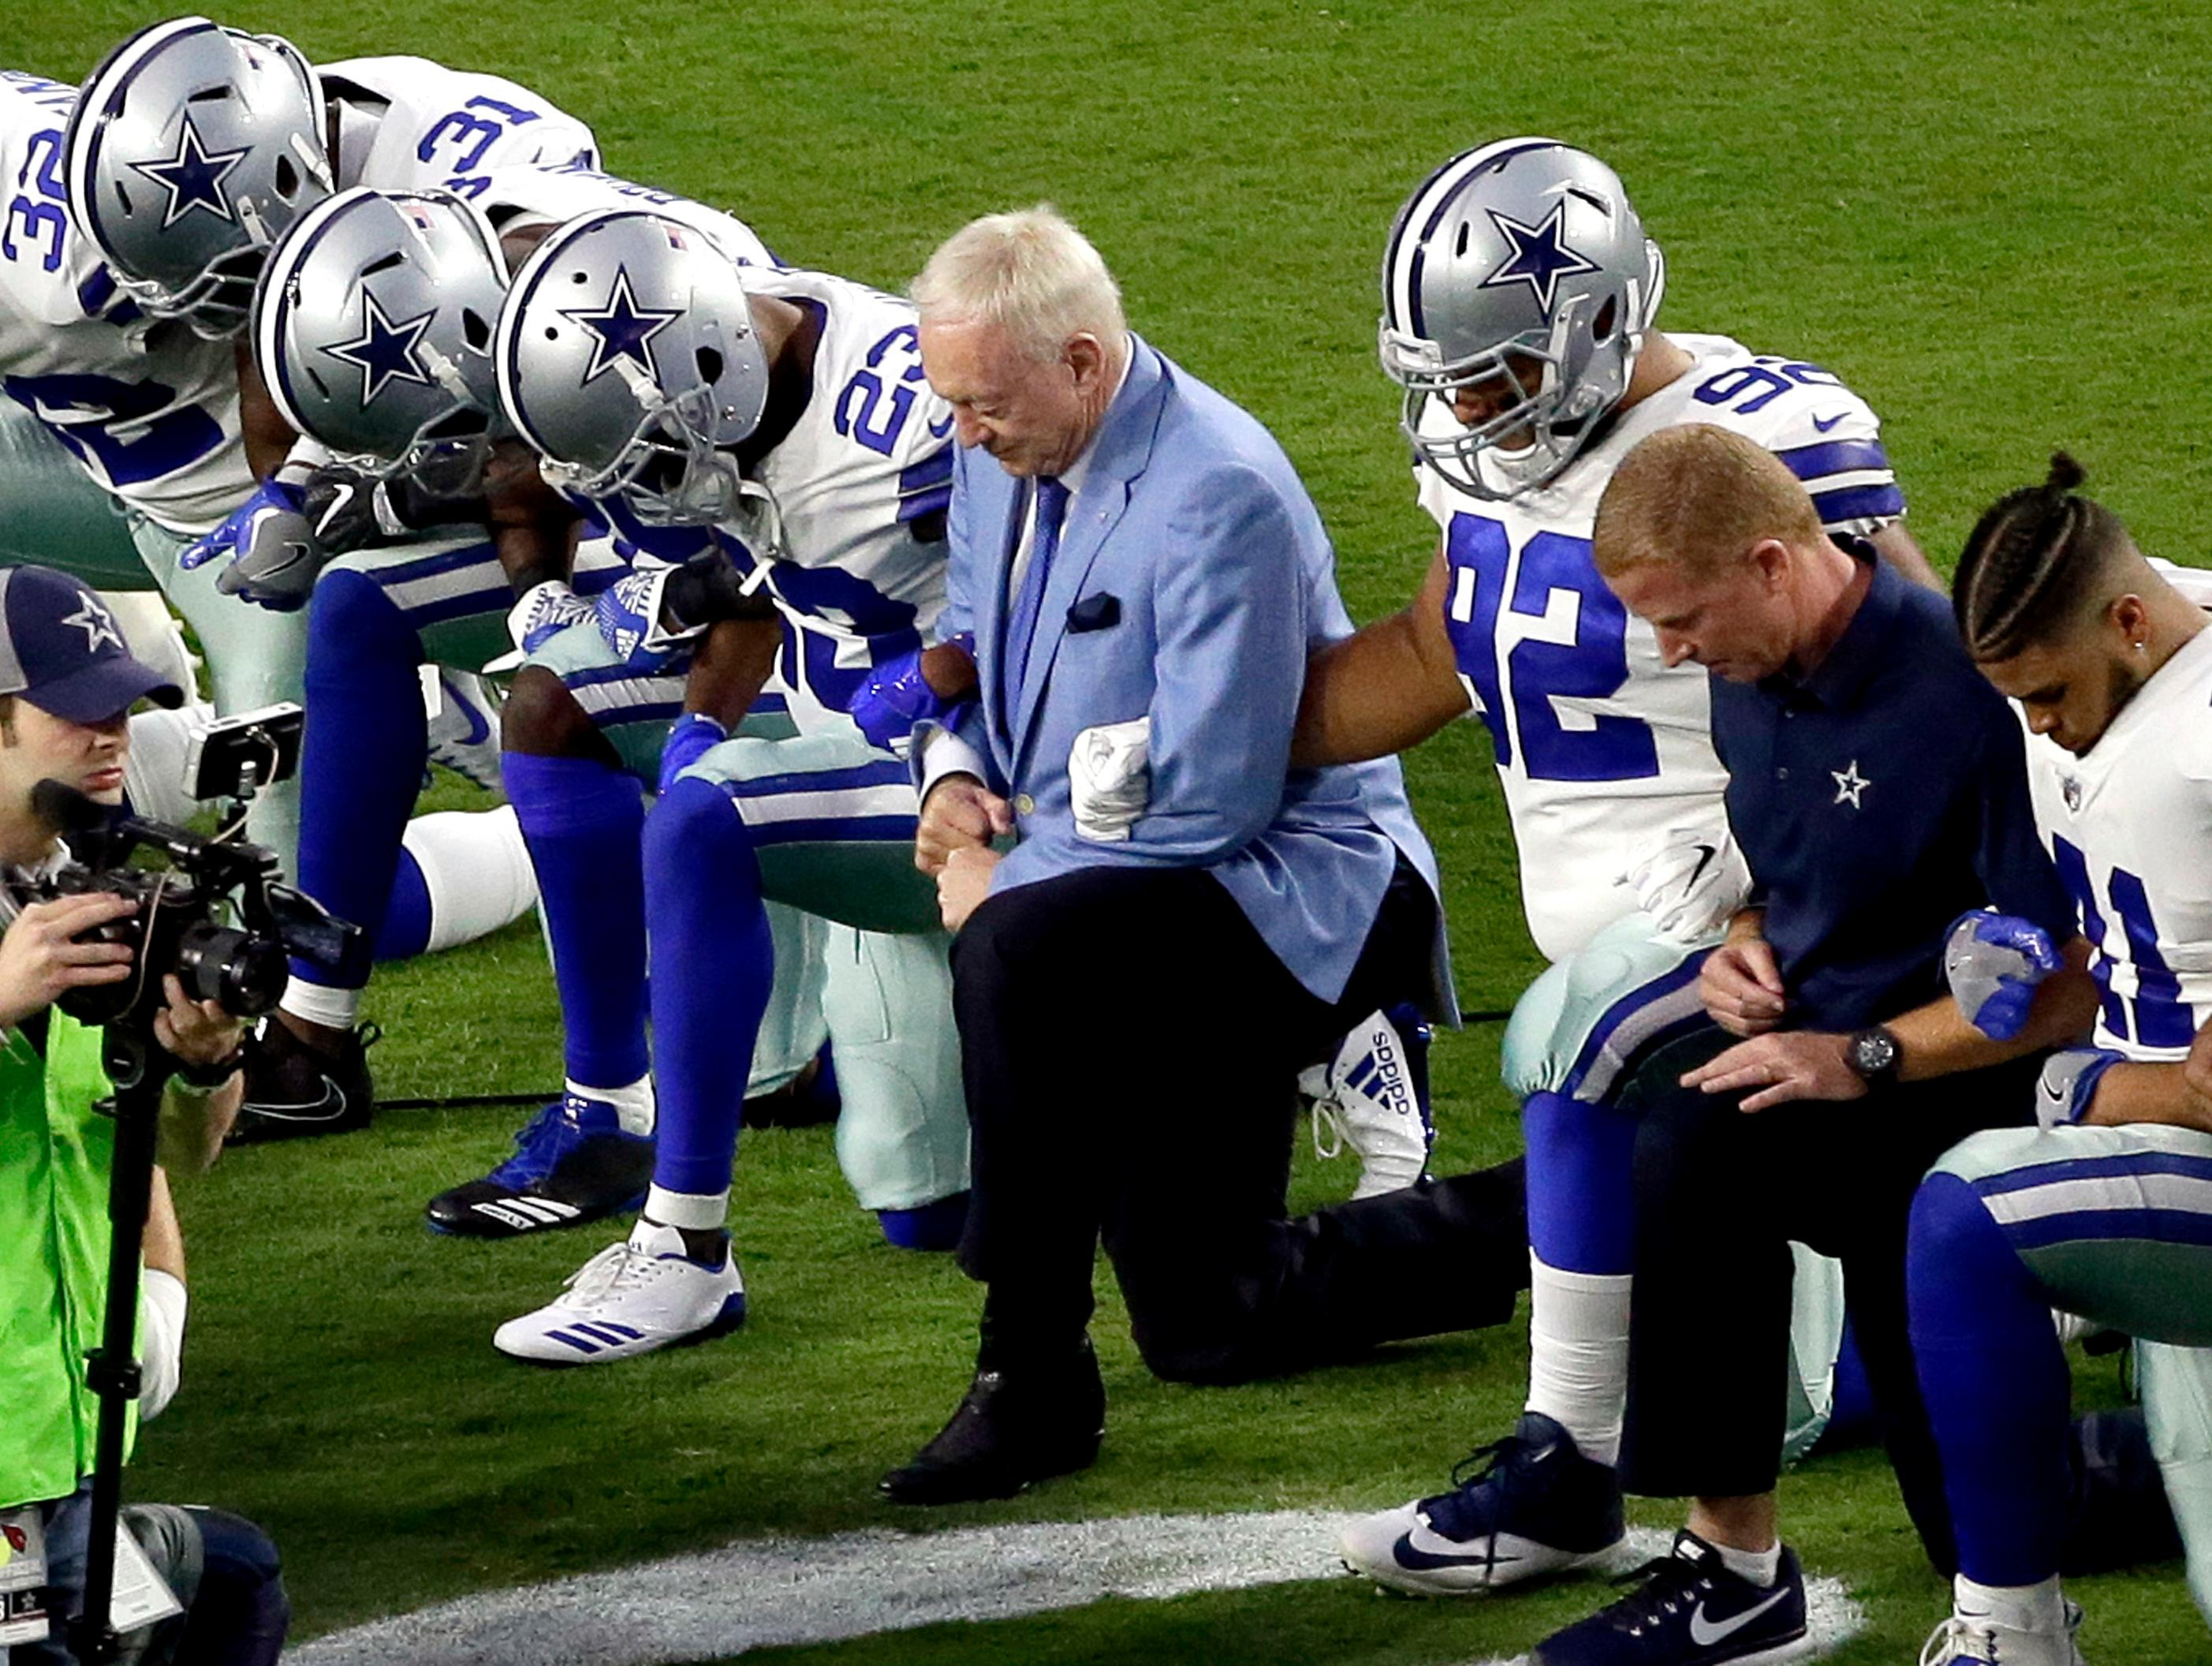 "FILE - In this Monday, Sept. 25, 2017, file photo, the Dallas Cowboys, led by owner Jerry Jones, center, take a knee prior to the national anthem and an NFL football game against the Arizona Cardinals, in Glendale, Ariz. ESPN anchor Jemele Hill has been suspended by the network for two weeks for making political statements on social media.  Hill, who is African-American, received criticism from the network last month after referring to President Donald Trump as a ""white supremacist.""  On Monday, Oct. 9, 2017, Hill targeted Jerry Jones, after the Dallas Cowboys owner stated that players who disrespect the flag would not play for his team.  (AP Photo/Matt York, File)"